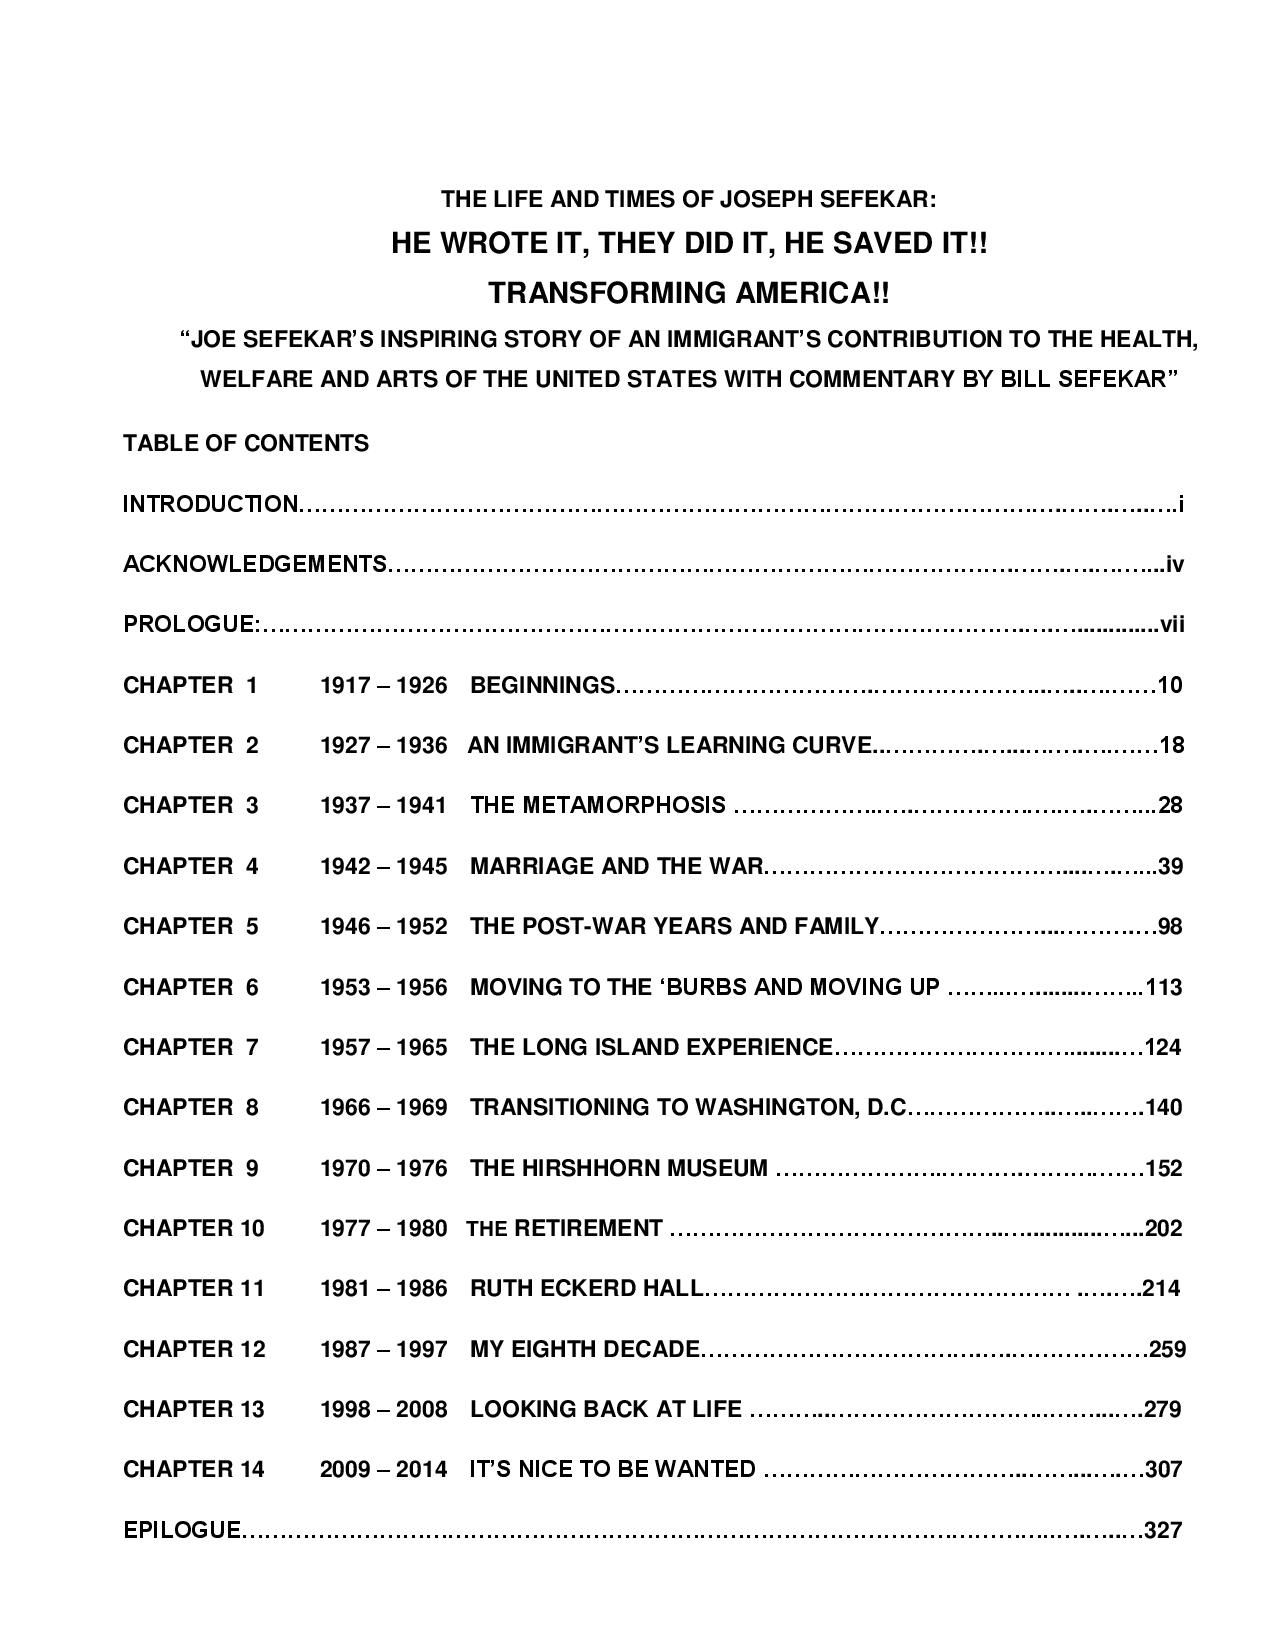 TABLE OF CONTENTS CHAPTER TITLES L&T JOSEPH SEFEKAR 5-18-16-page-001